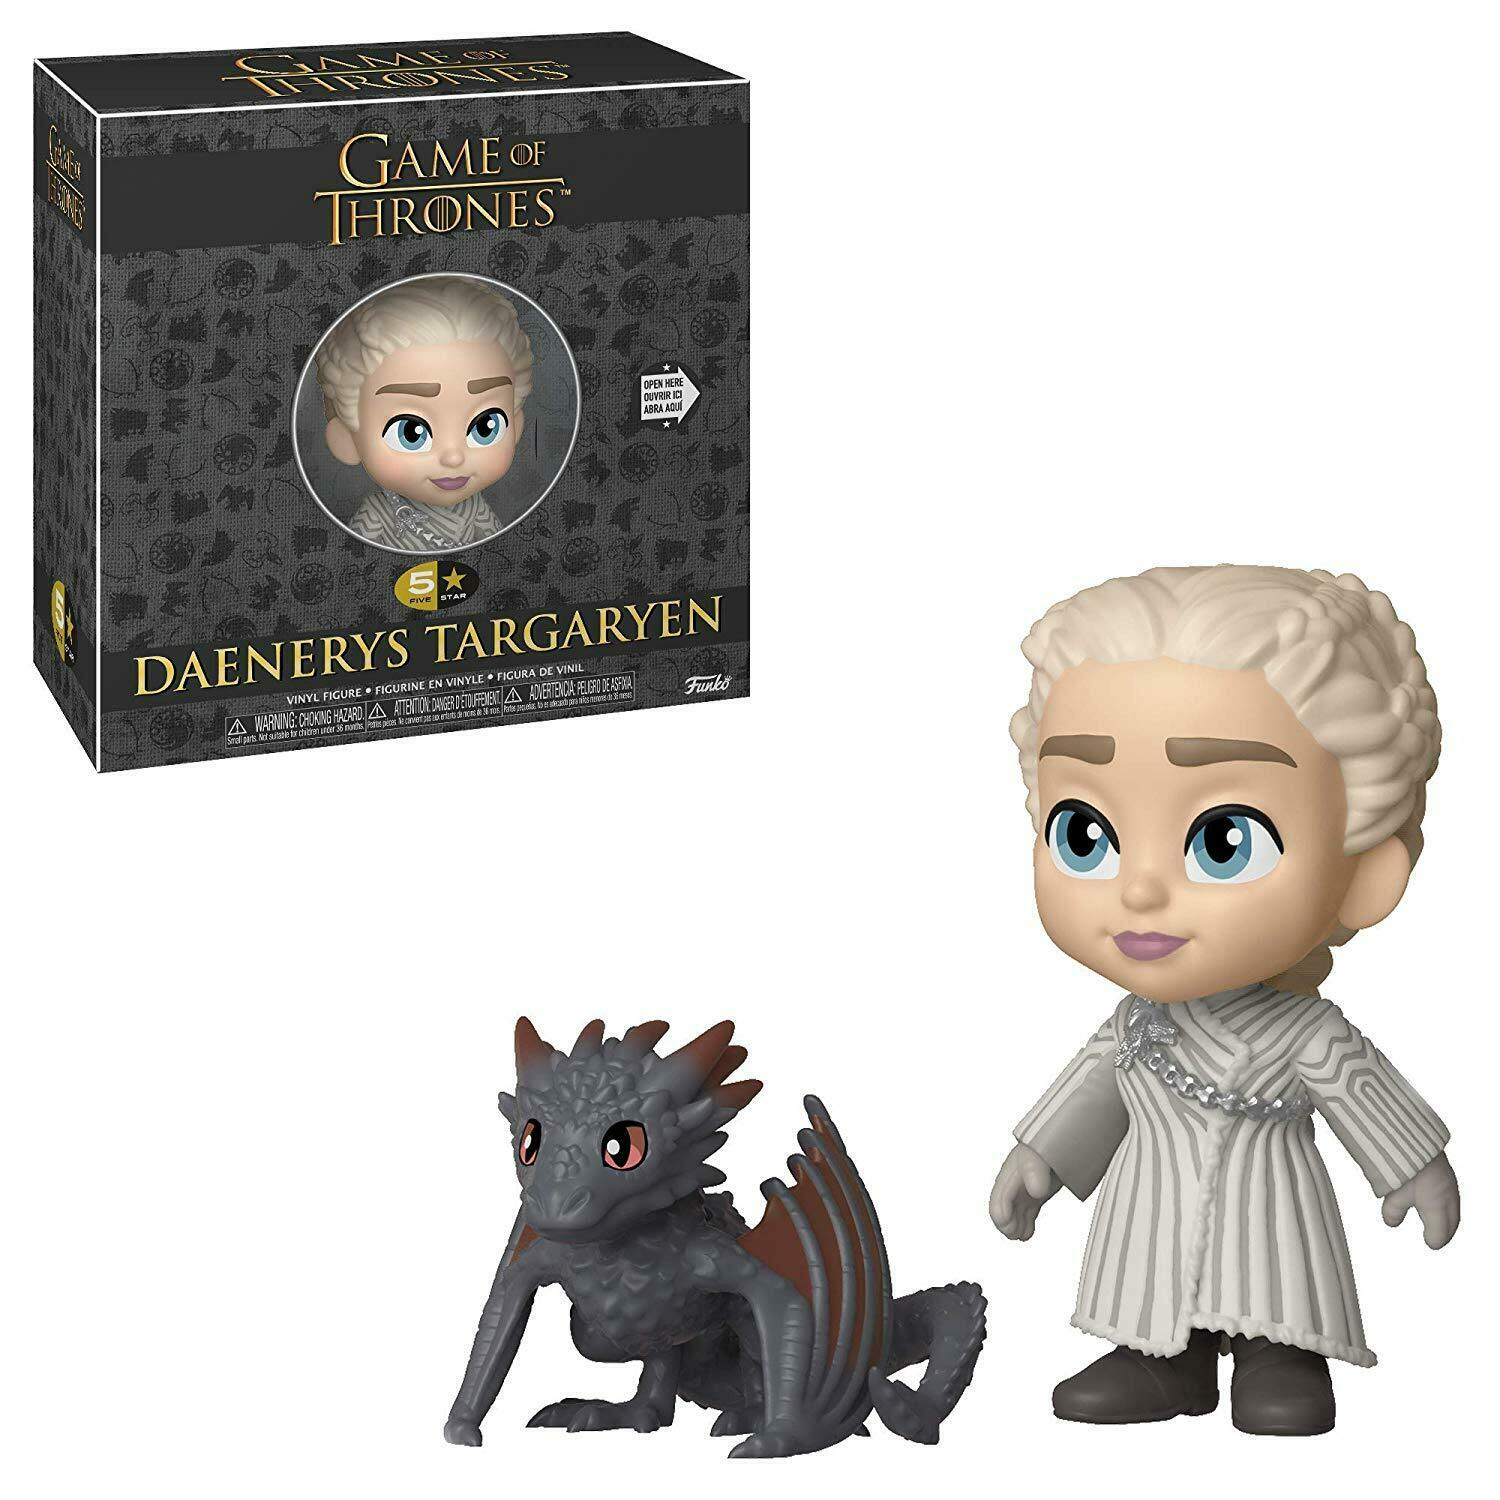 Funko Boneco Daenerys Targaryen: Game of Thrones (5 Star) - Funko